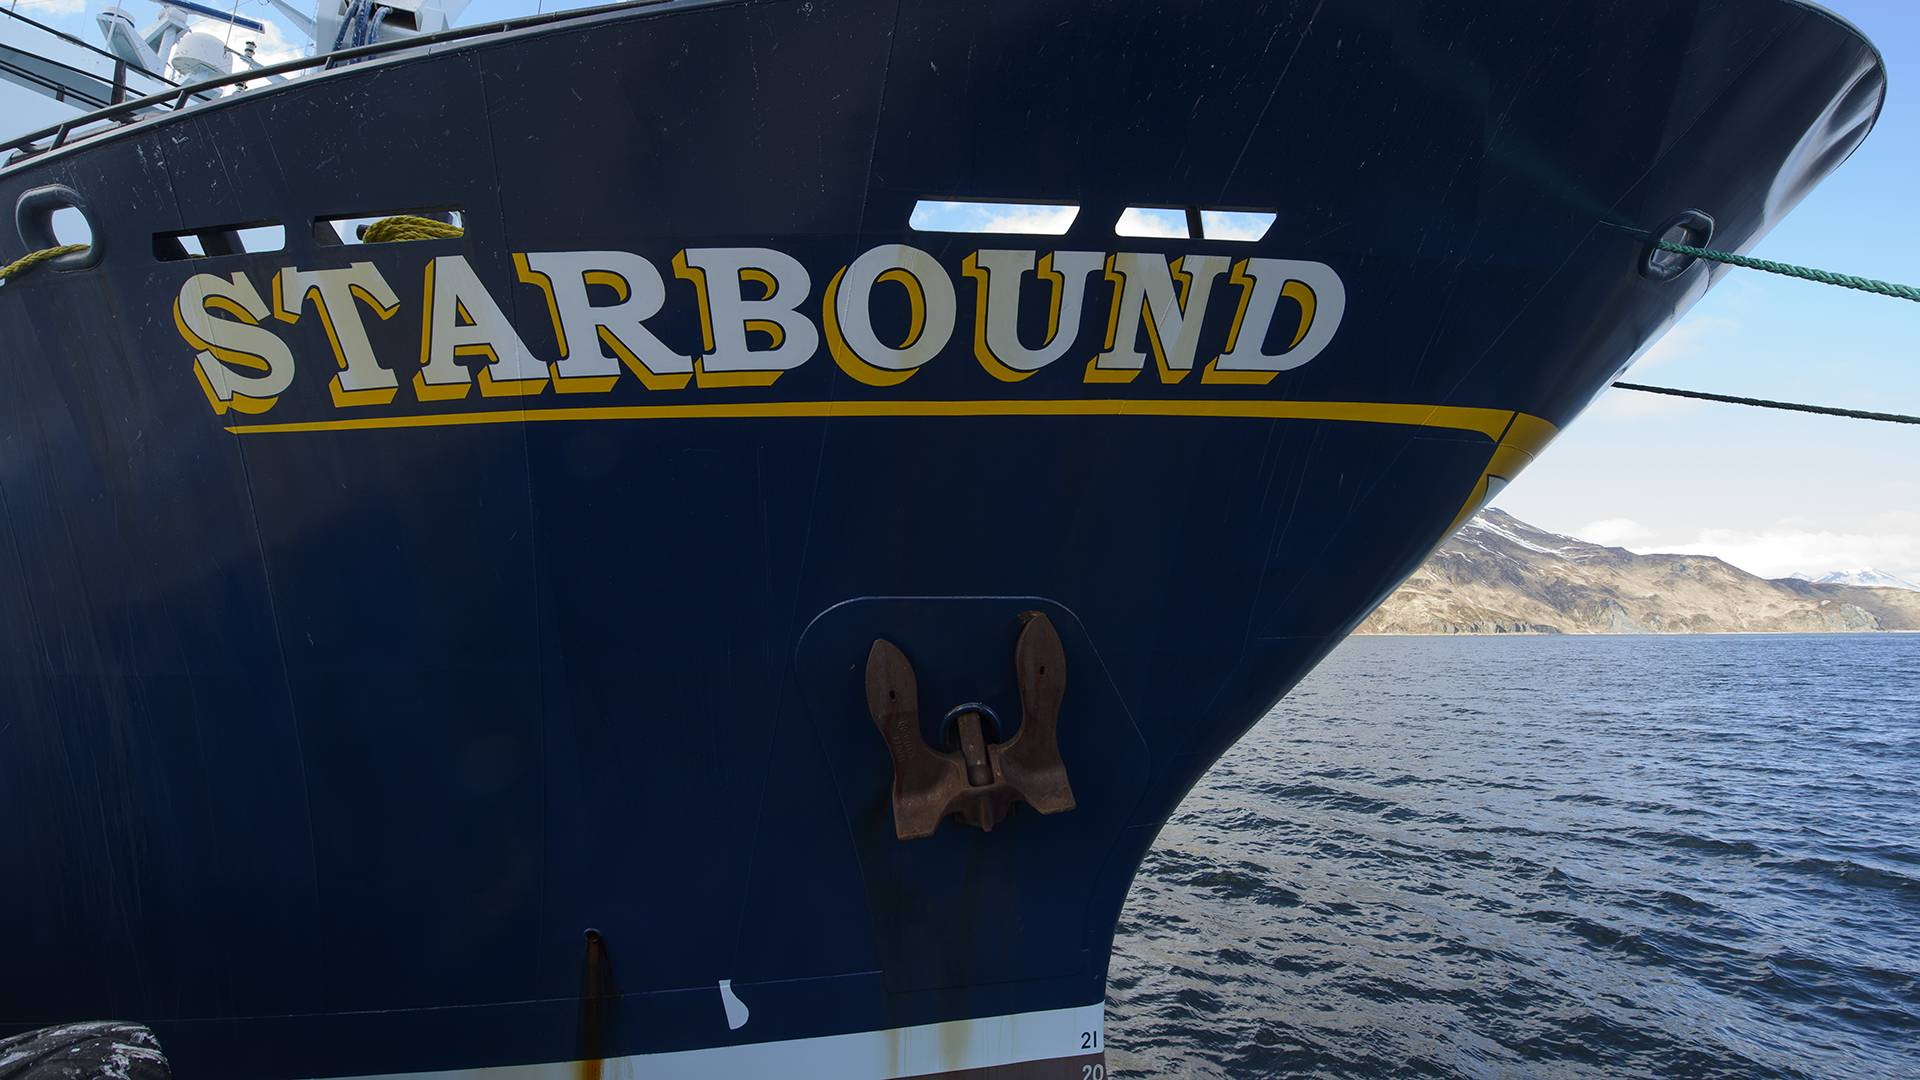 """A shot of the front of a large blue boat on the water with """"Starbound"""" painted on the front."""